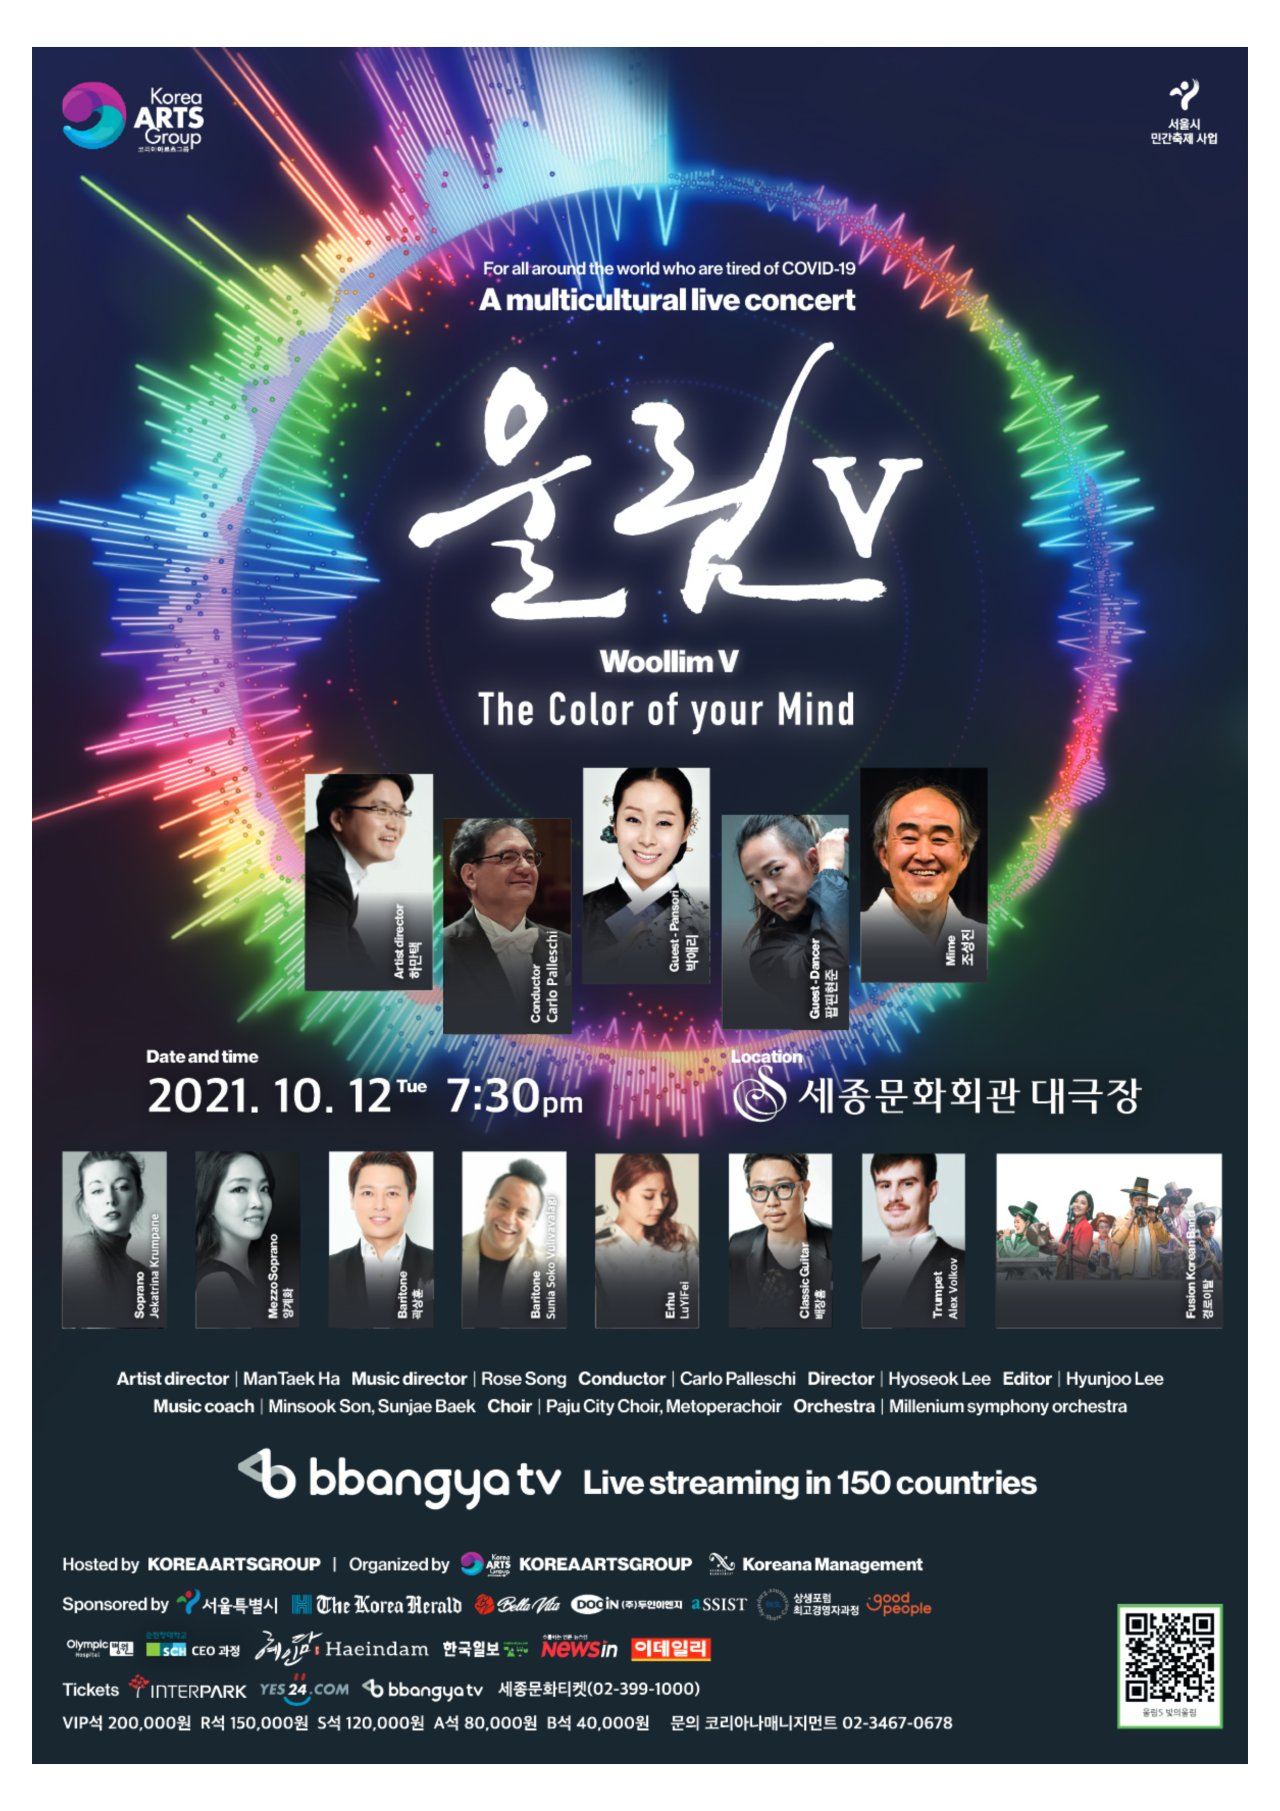 """Poster for """"Woollim V - The Color of Your Mind"""" (Korea Arts Group)"""